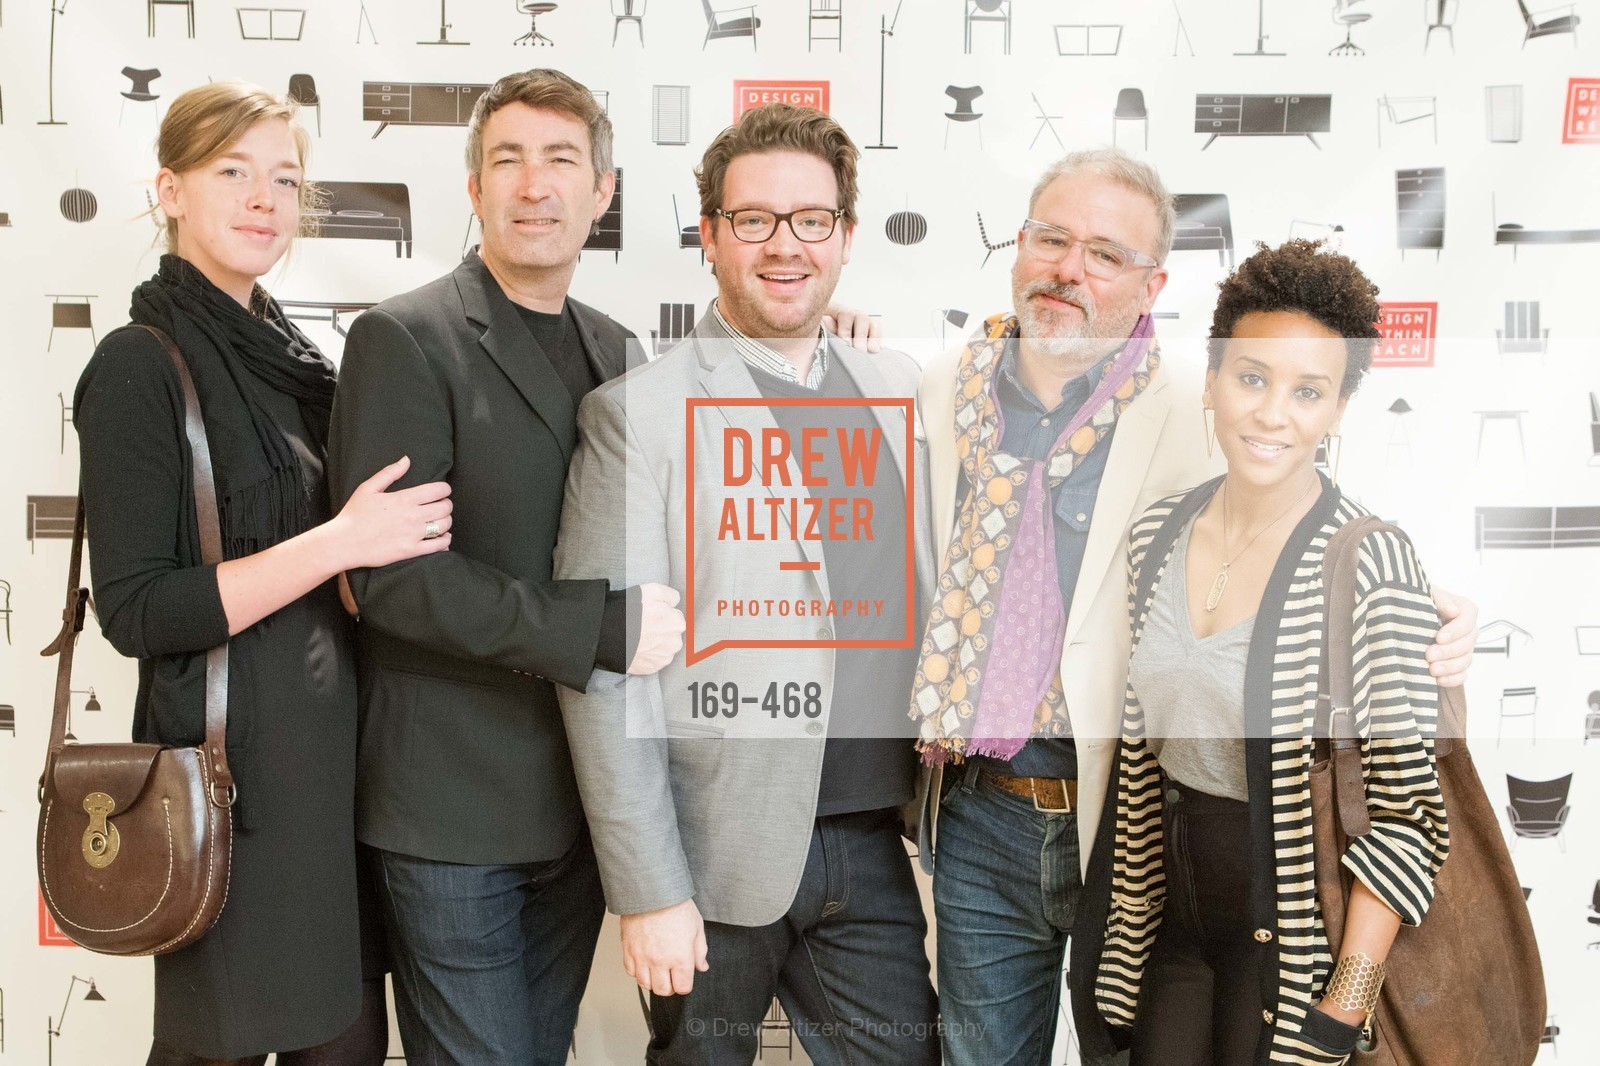 Martha Traer, Sunshine Jones, Jeremiah Allen, Kirk Wilder, Delilah Hailechristos, DESIGN WITHIN REACH Studio Opening, US. US, January 21st, 2014,Drew Altizer, Drew Altizer Photography, full-service agency, private events, San Francisco photographer, photographer california